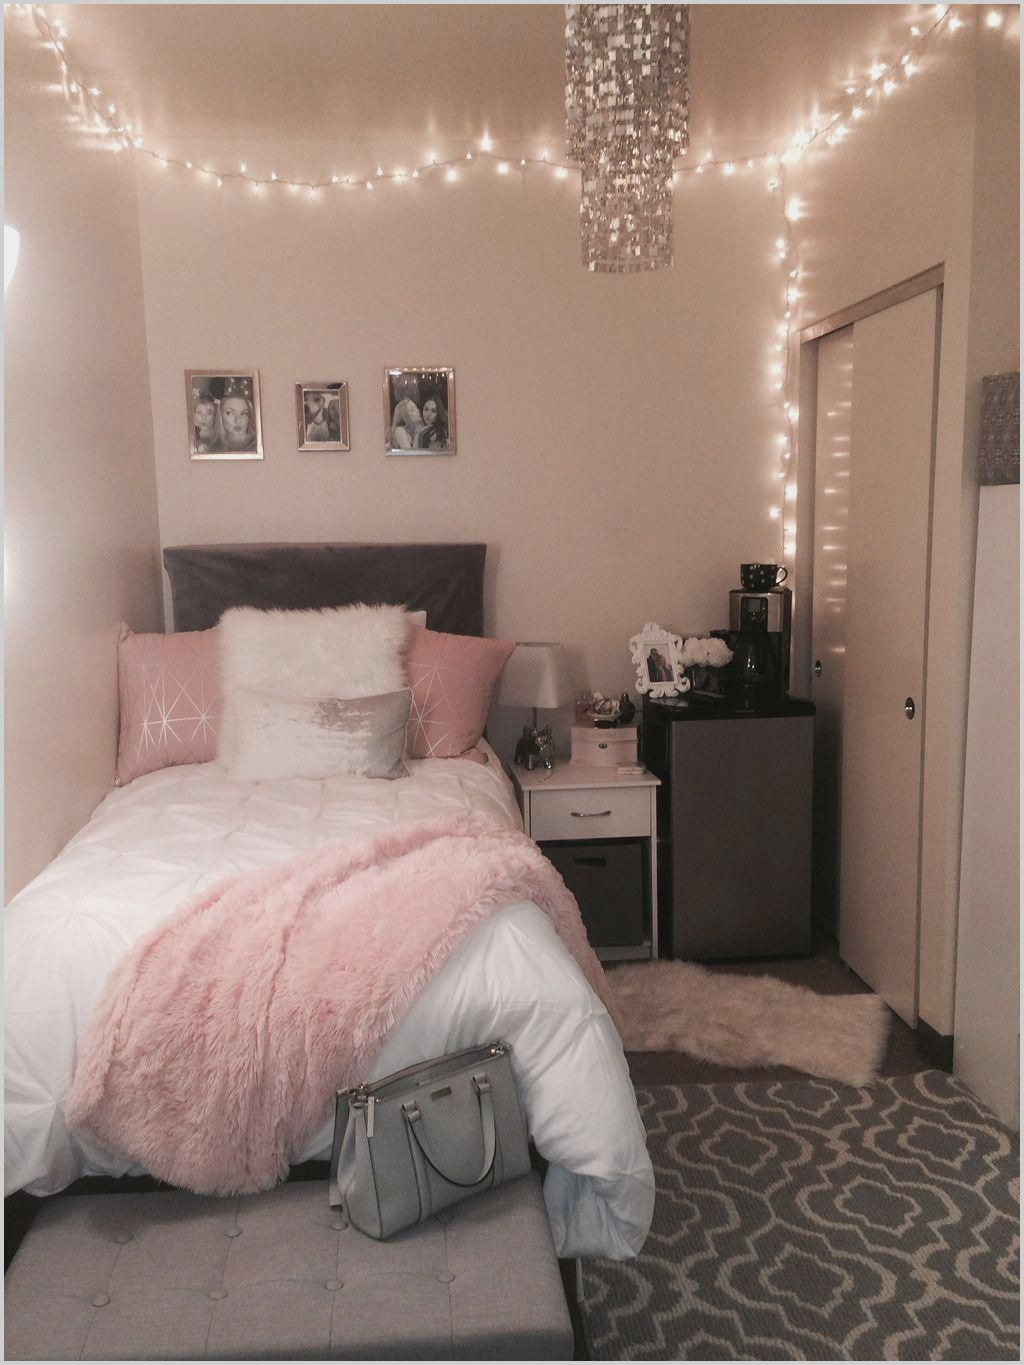 Stylish Bedrooms Decoration For Young Woman In 2020 Bedroom Layouts Dorm Room Decor Stylish Bedroom